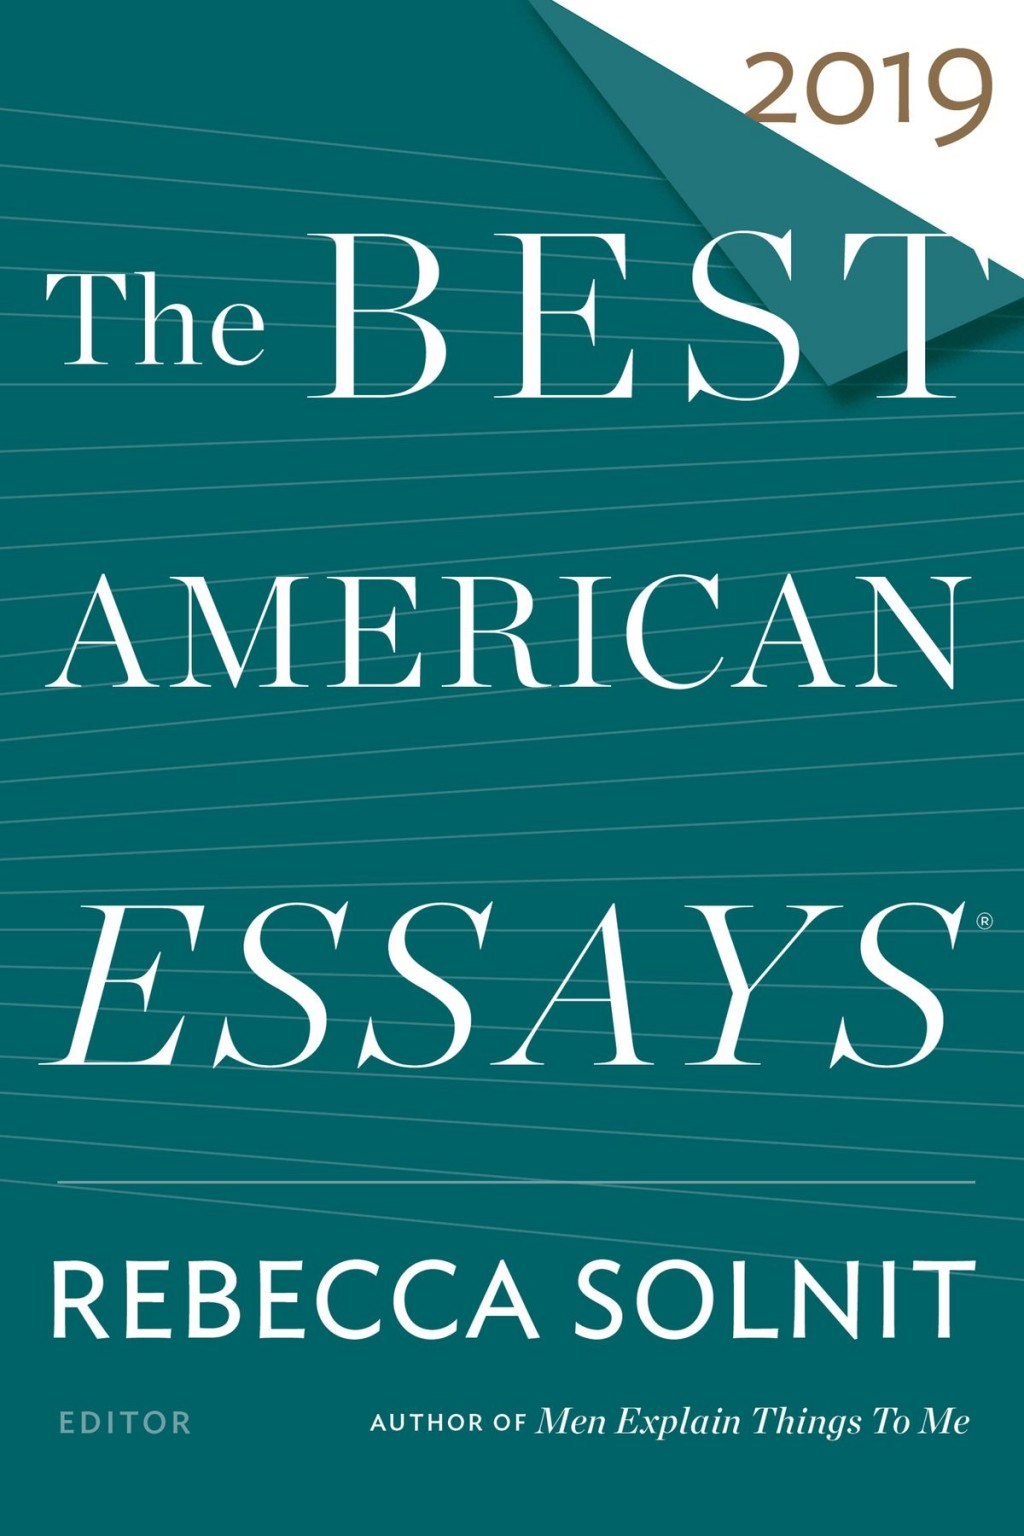 007 The Best American Essays Essay Wonderful Of Century Table Contents 2013 Pdf Download Large